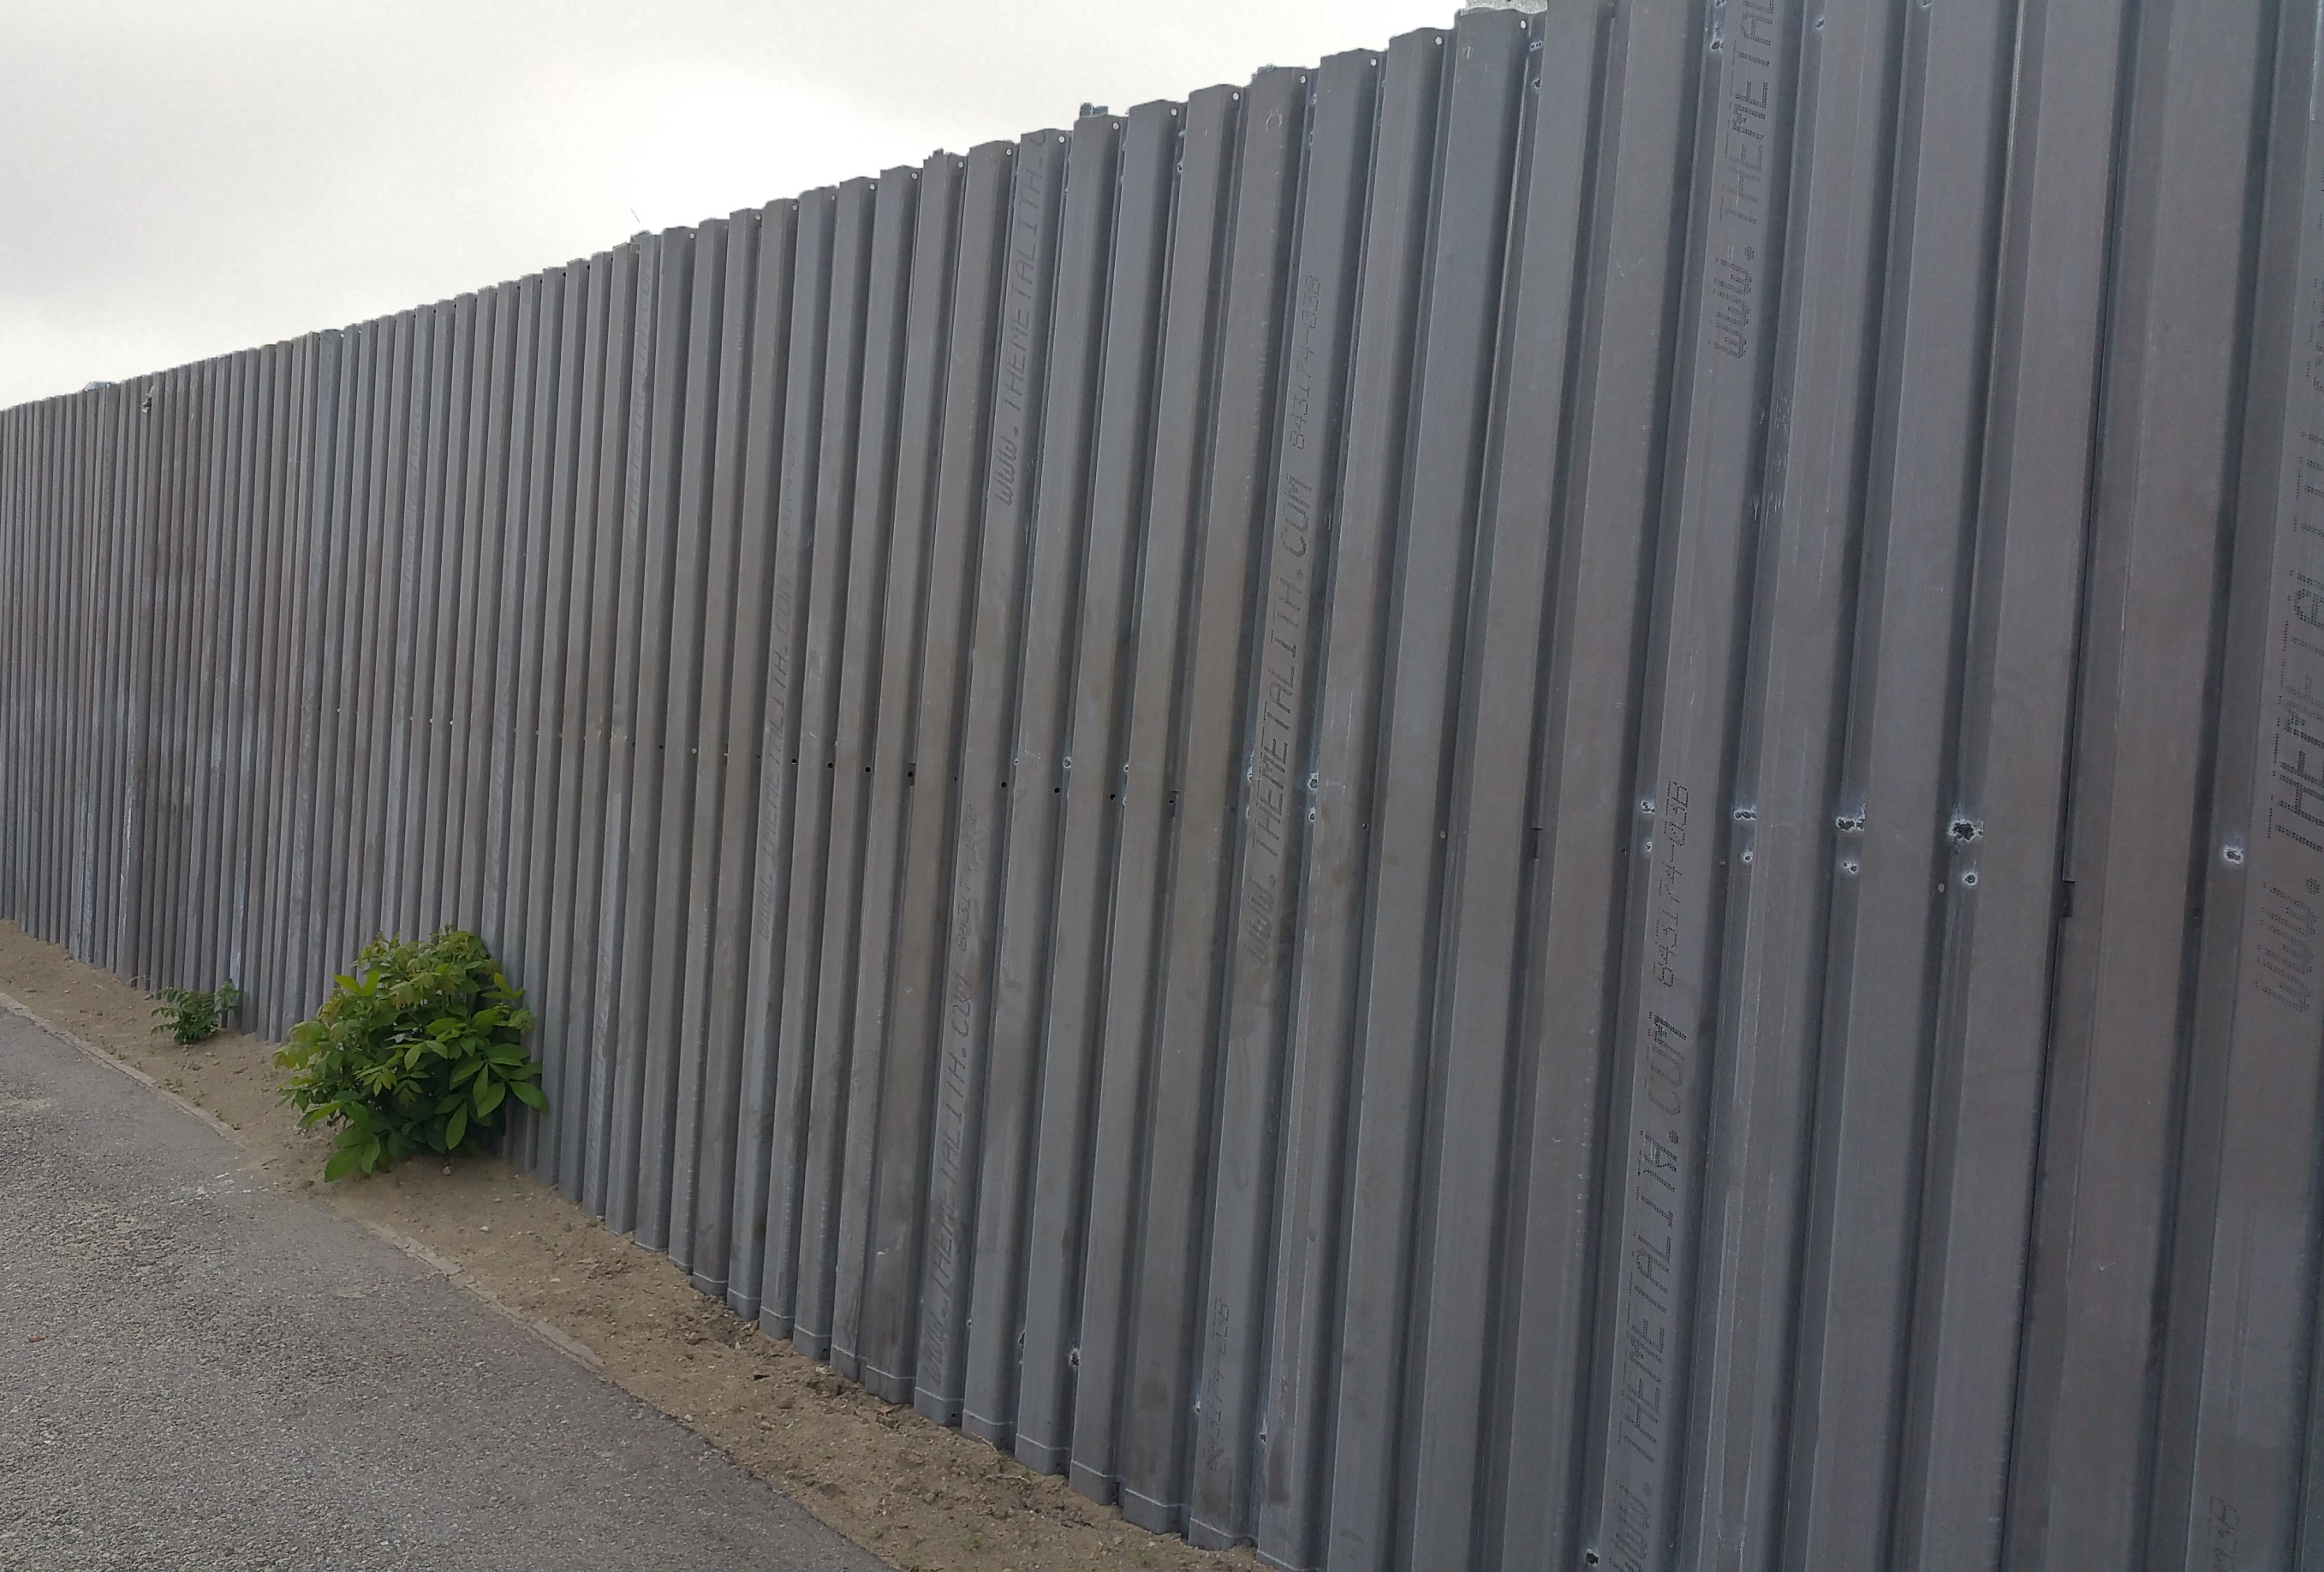 Metal Siding Sheets : Metal barrier border fencing b deck roofing sheets